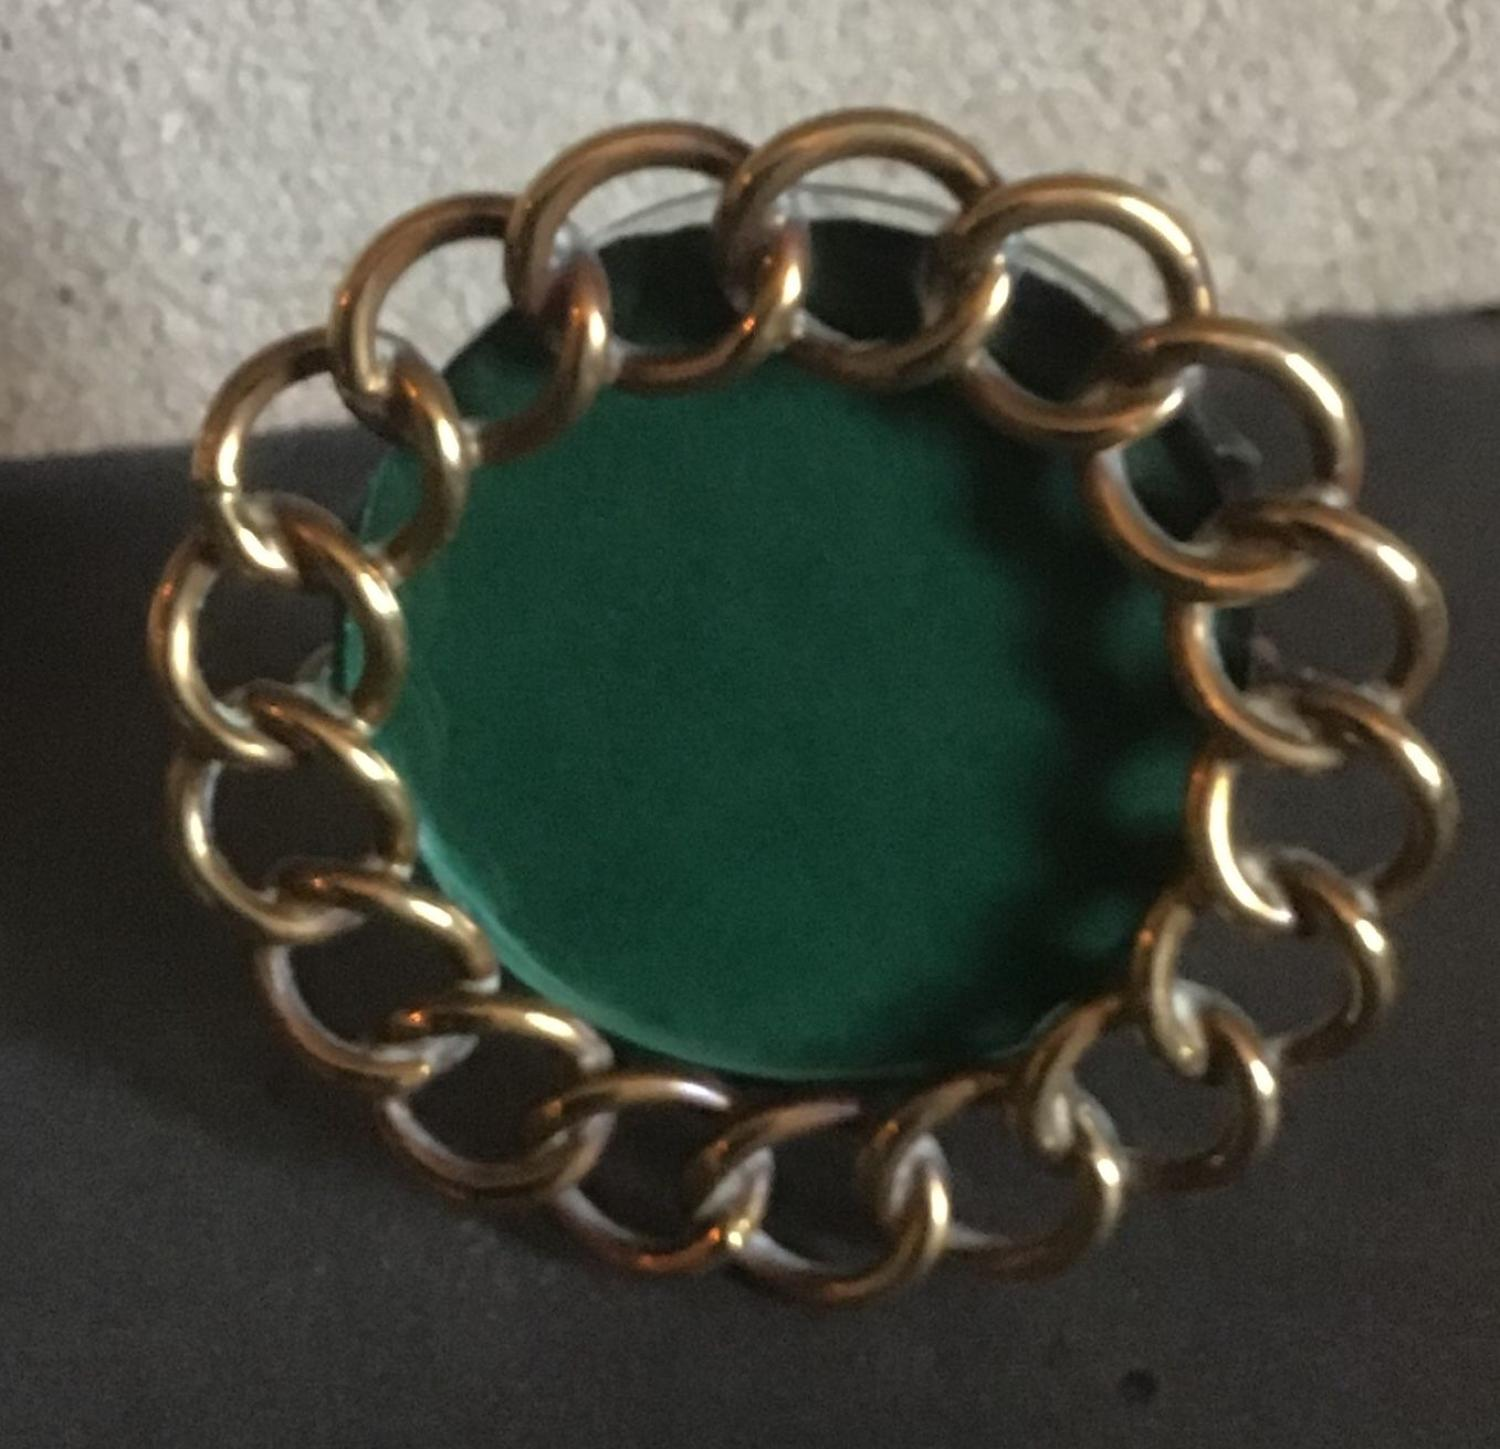 Miniature brass chain link photograph frame